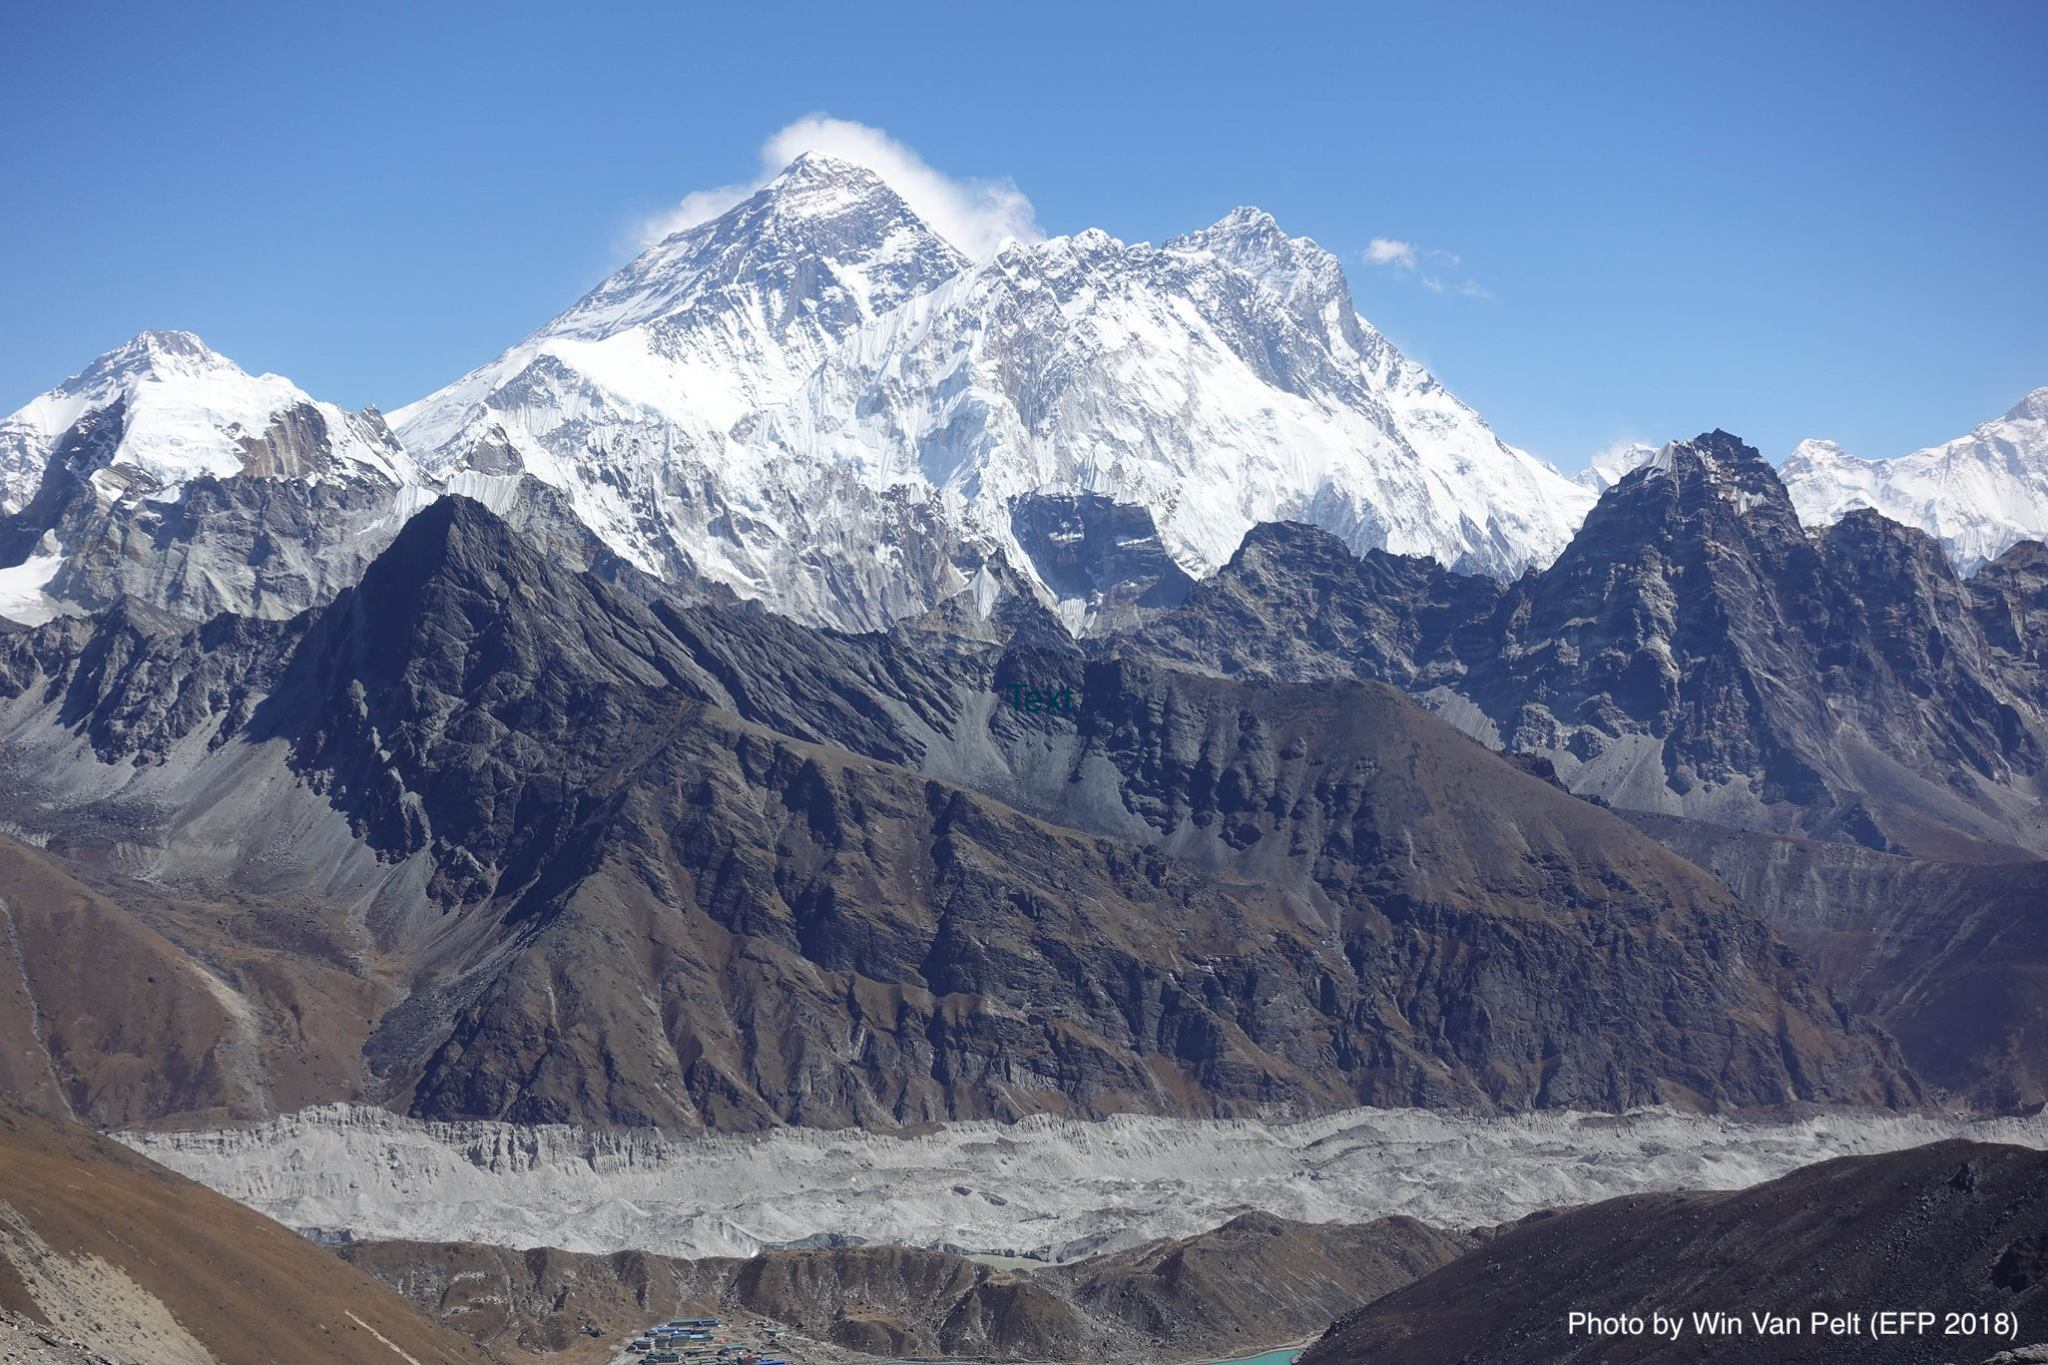 View of Mount Everest from Renjo Pass